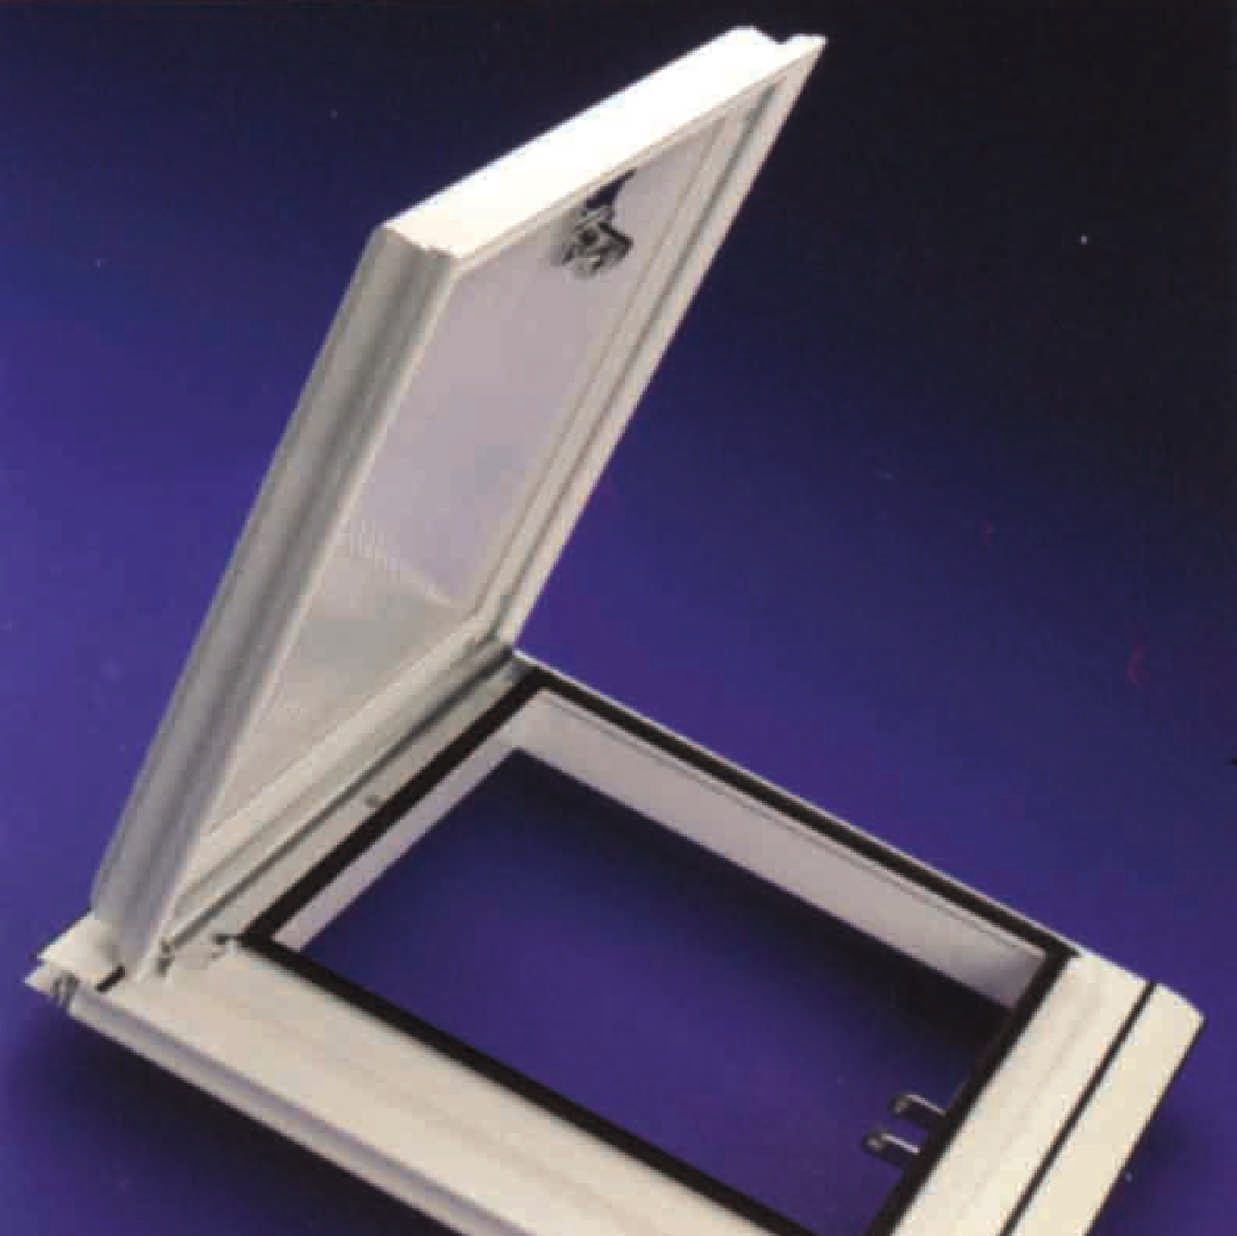 Buy Aluminium/uPVC Conservatory Roof Vent (Bar-to-Bar) for 25mm thick polycarbonate online today